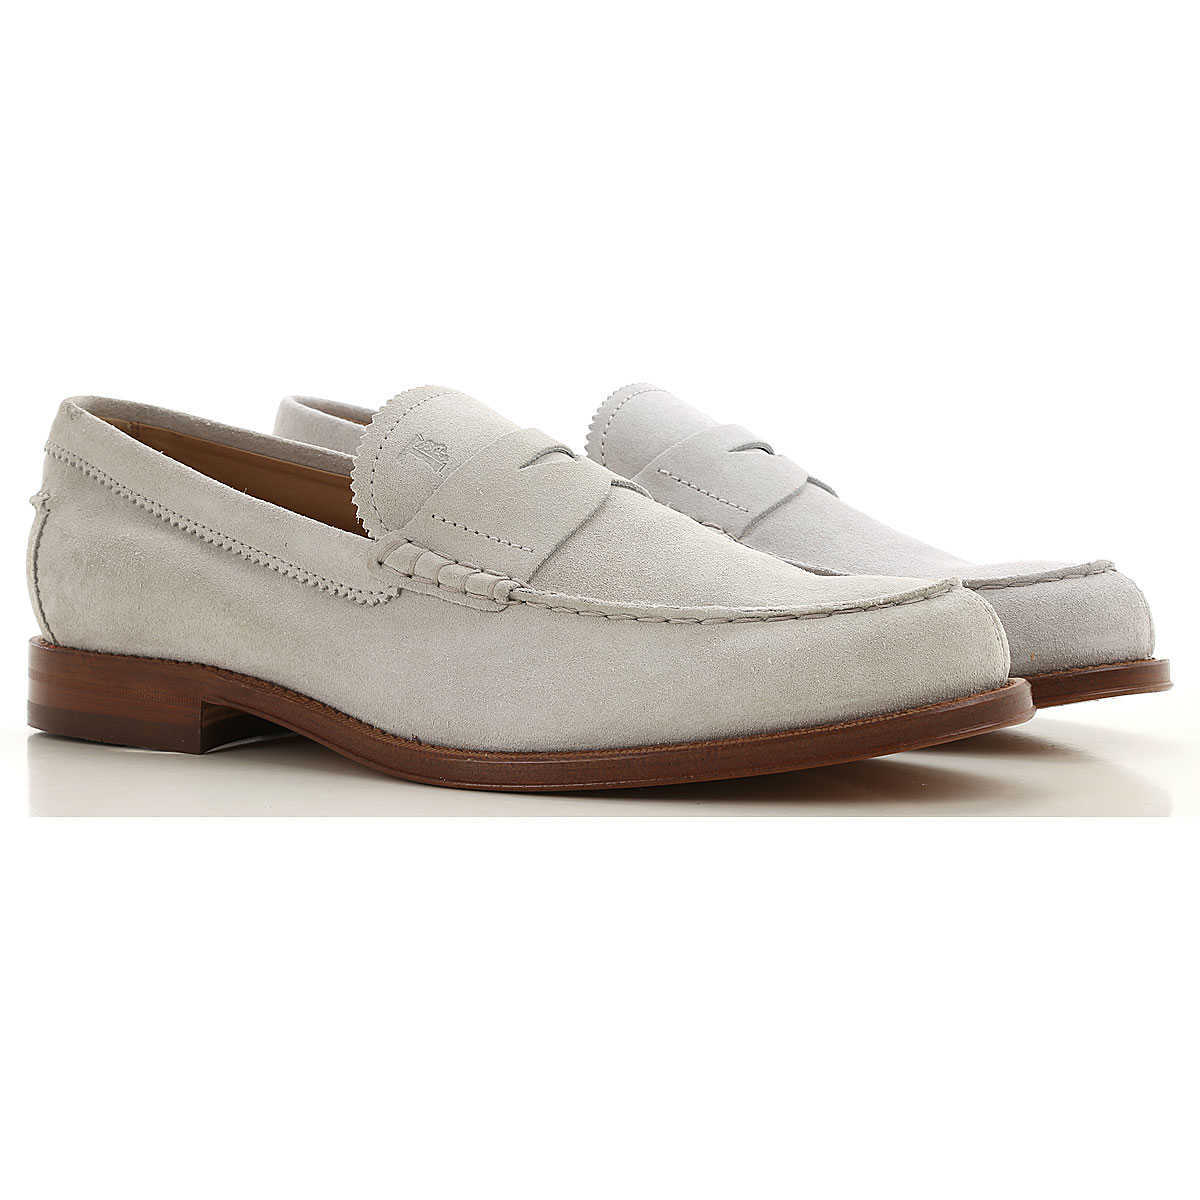 Tods Loafers for Men On Sale Ice DK - GOOFASH - Mens LOAFERS